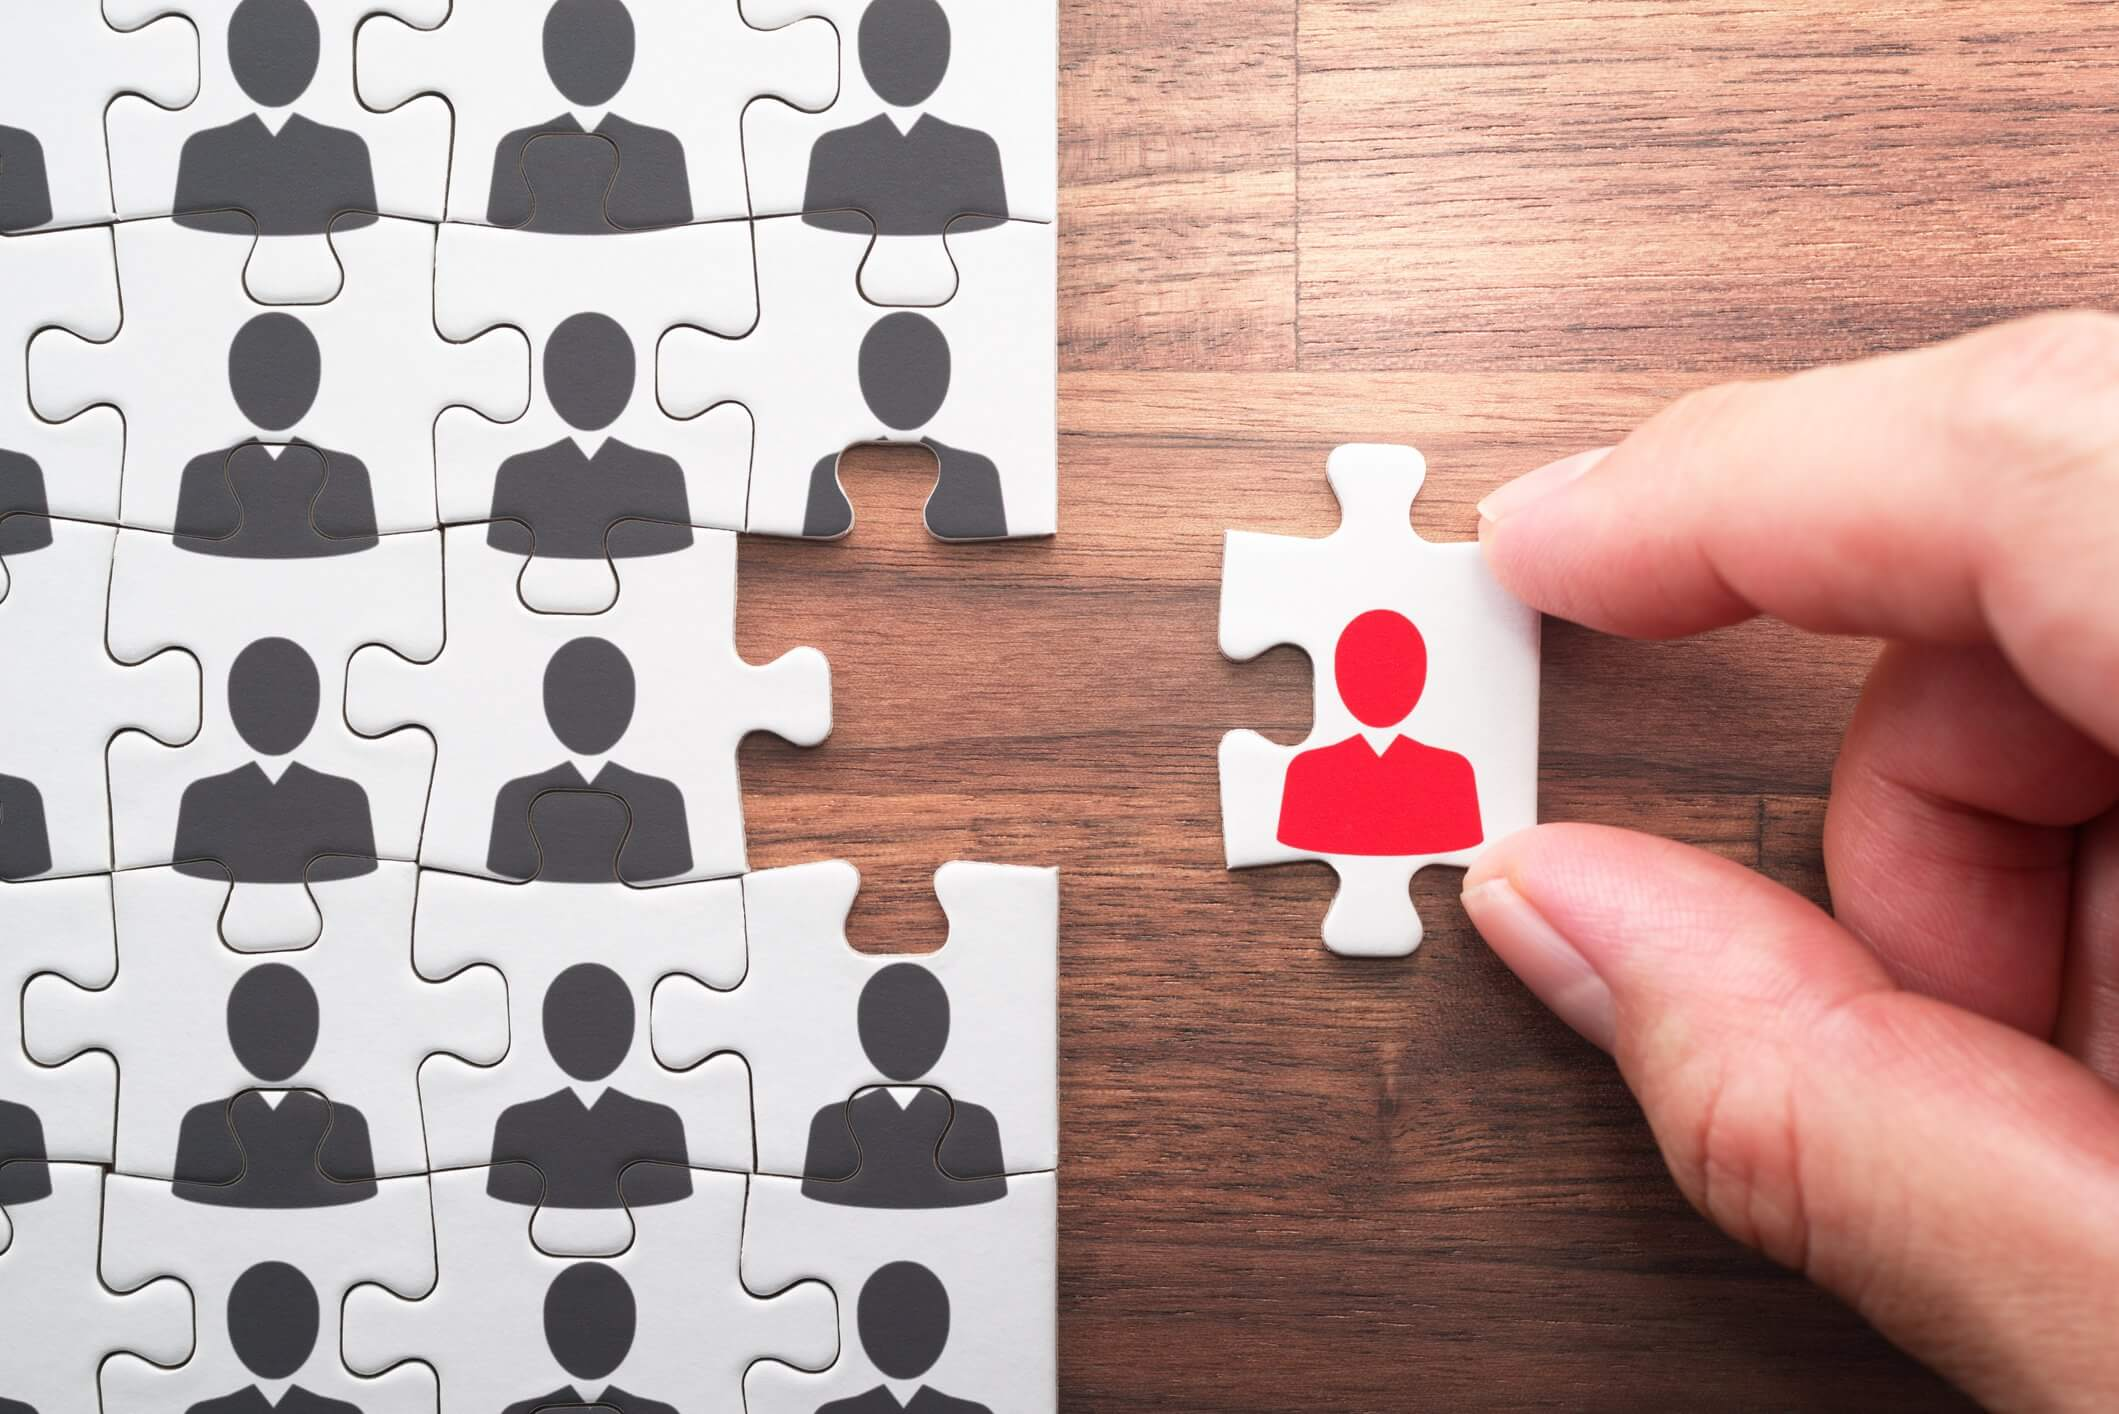 A Guide to Recruitment Marketing Strategies on a Small Budget outline of figure on puzzle pieces with one red outlined figure on missing piece